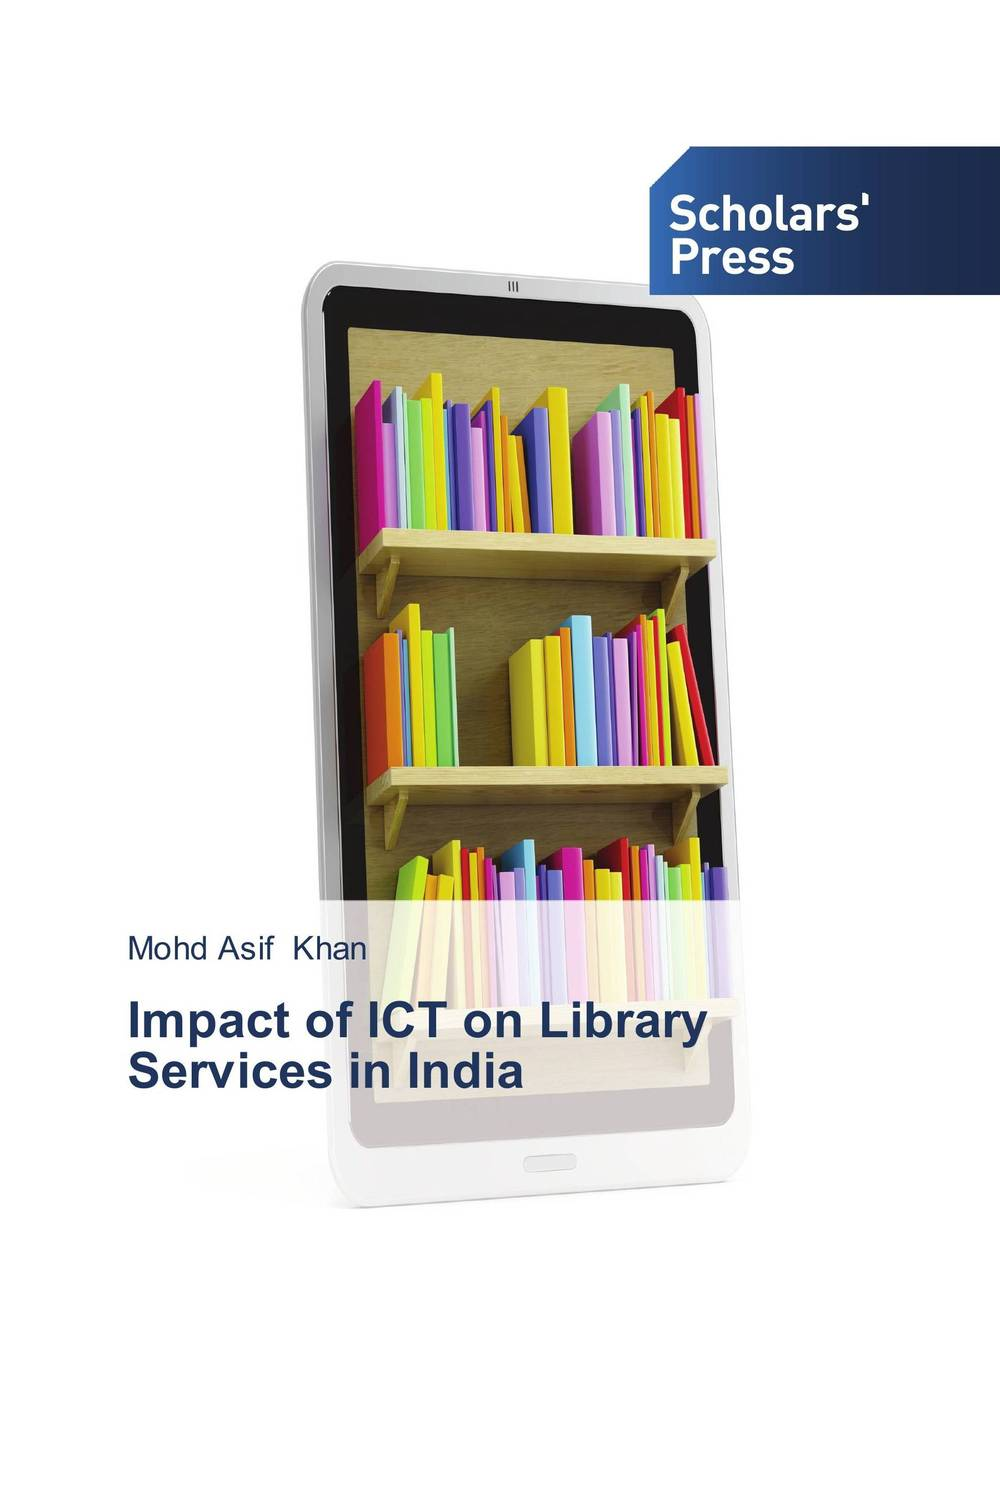 Impact of ICT on Library Services in India learning resources набор пробей